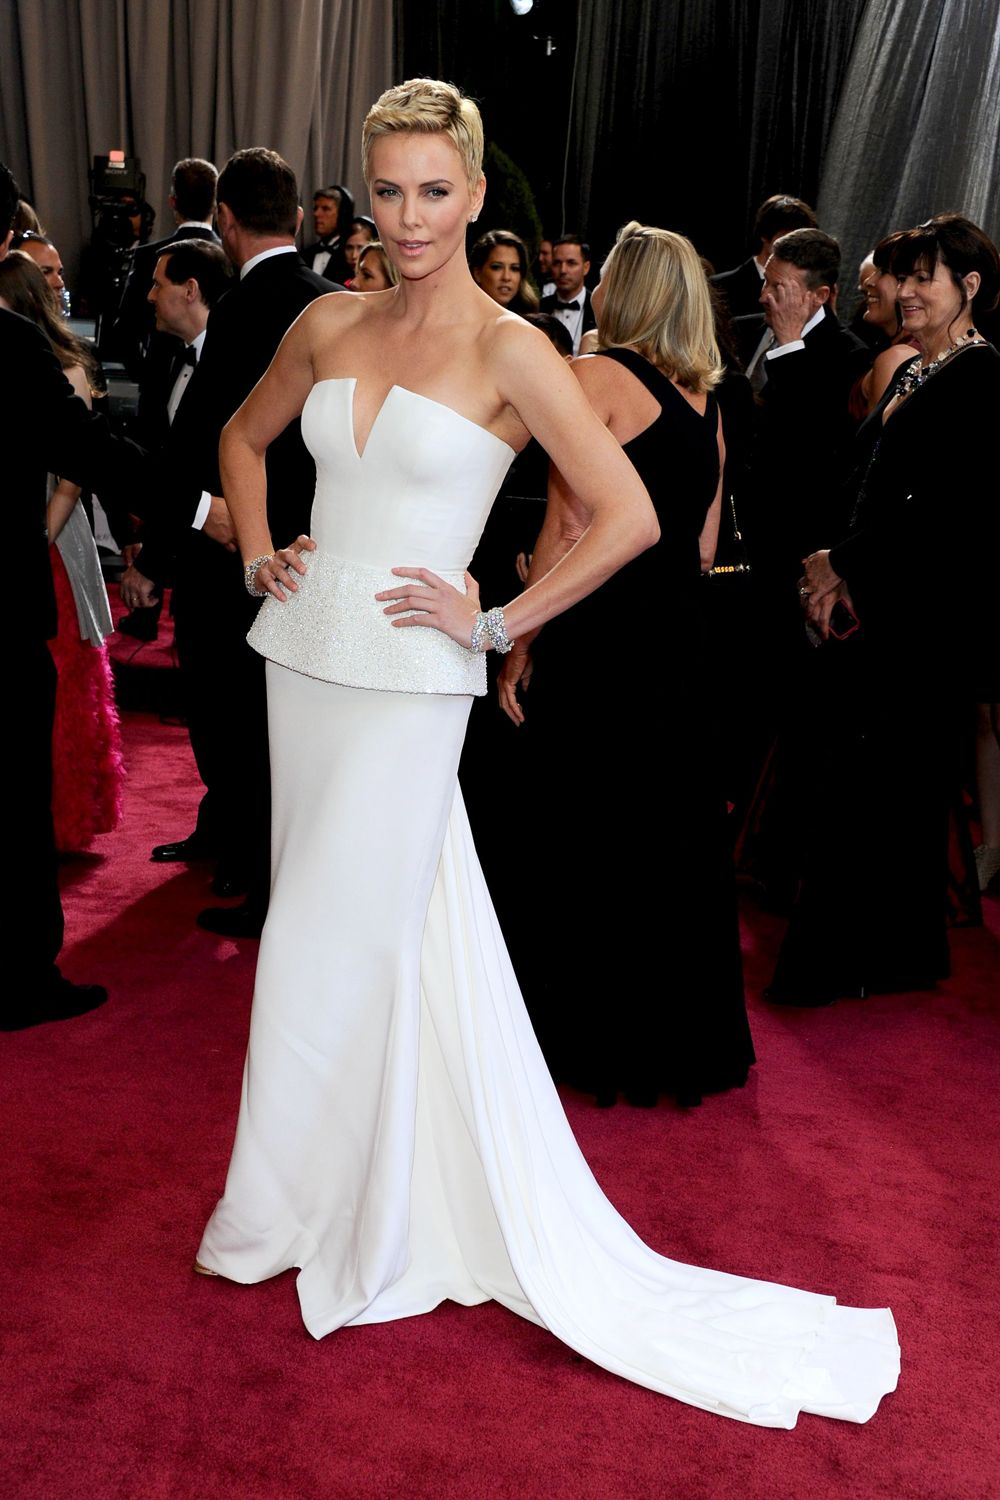 Best Oscar Dresses Of All Time, From Audrey Hepburn To ...